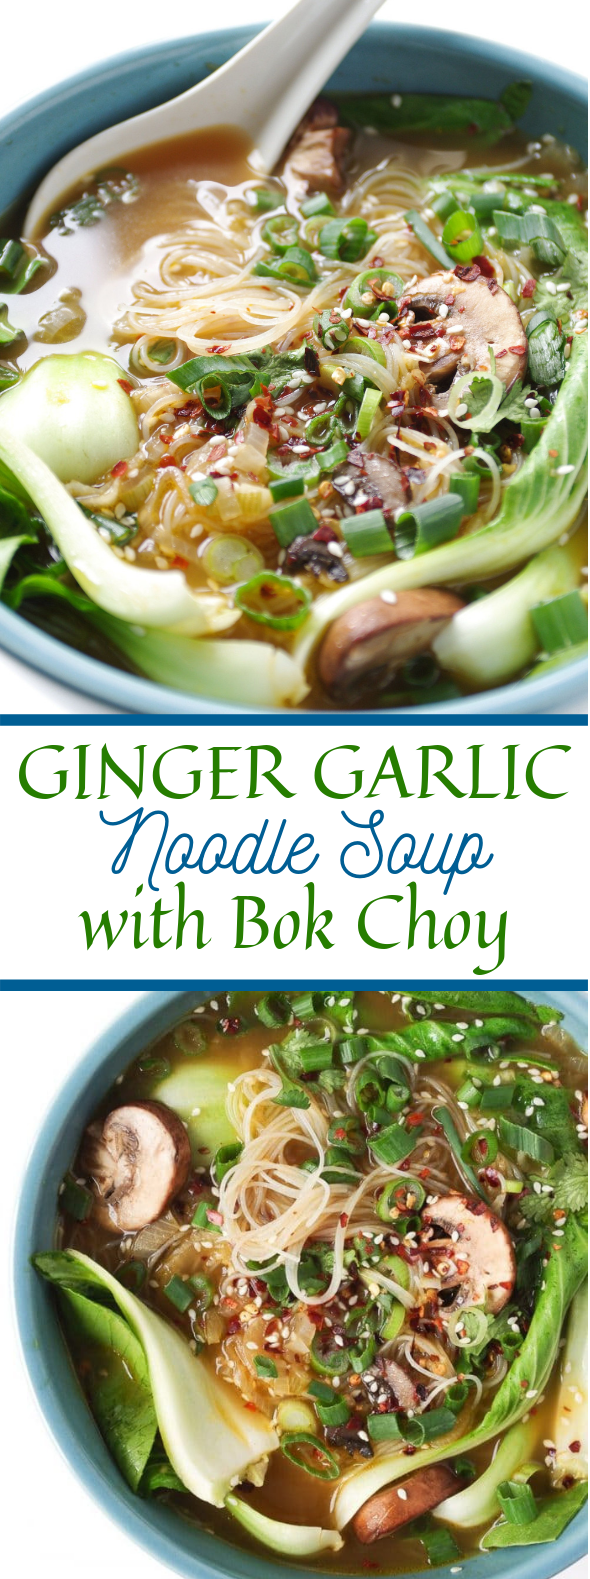 GINGER GARLIC NOODLE SOUP WITH BOK CHOY (BOK CHOY SOUP) #veggies #vegetarian